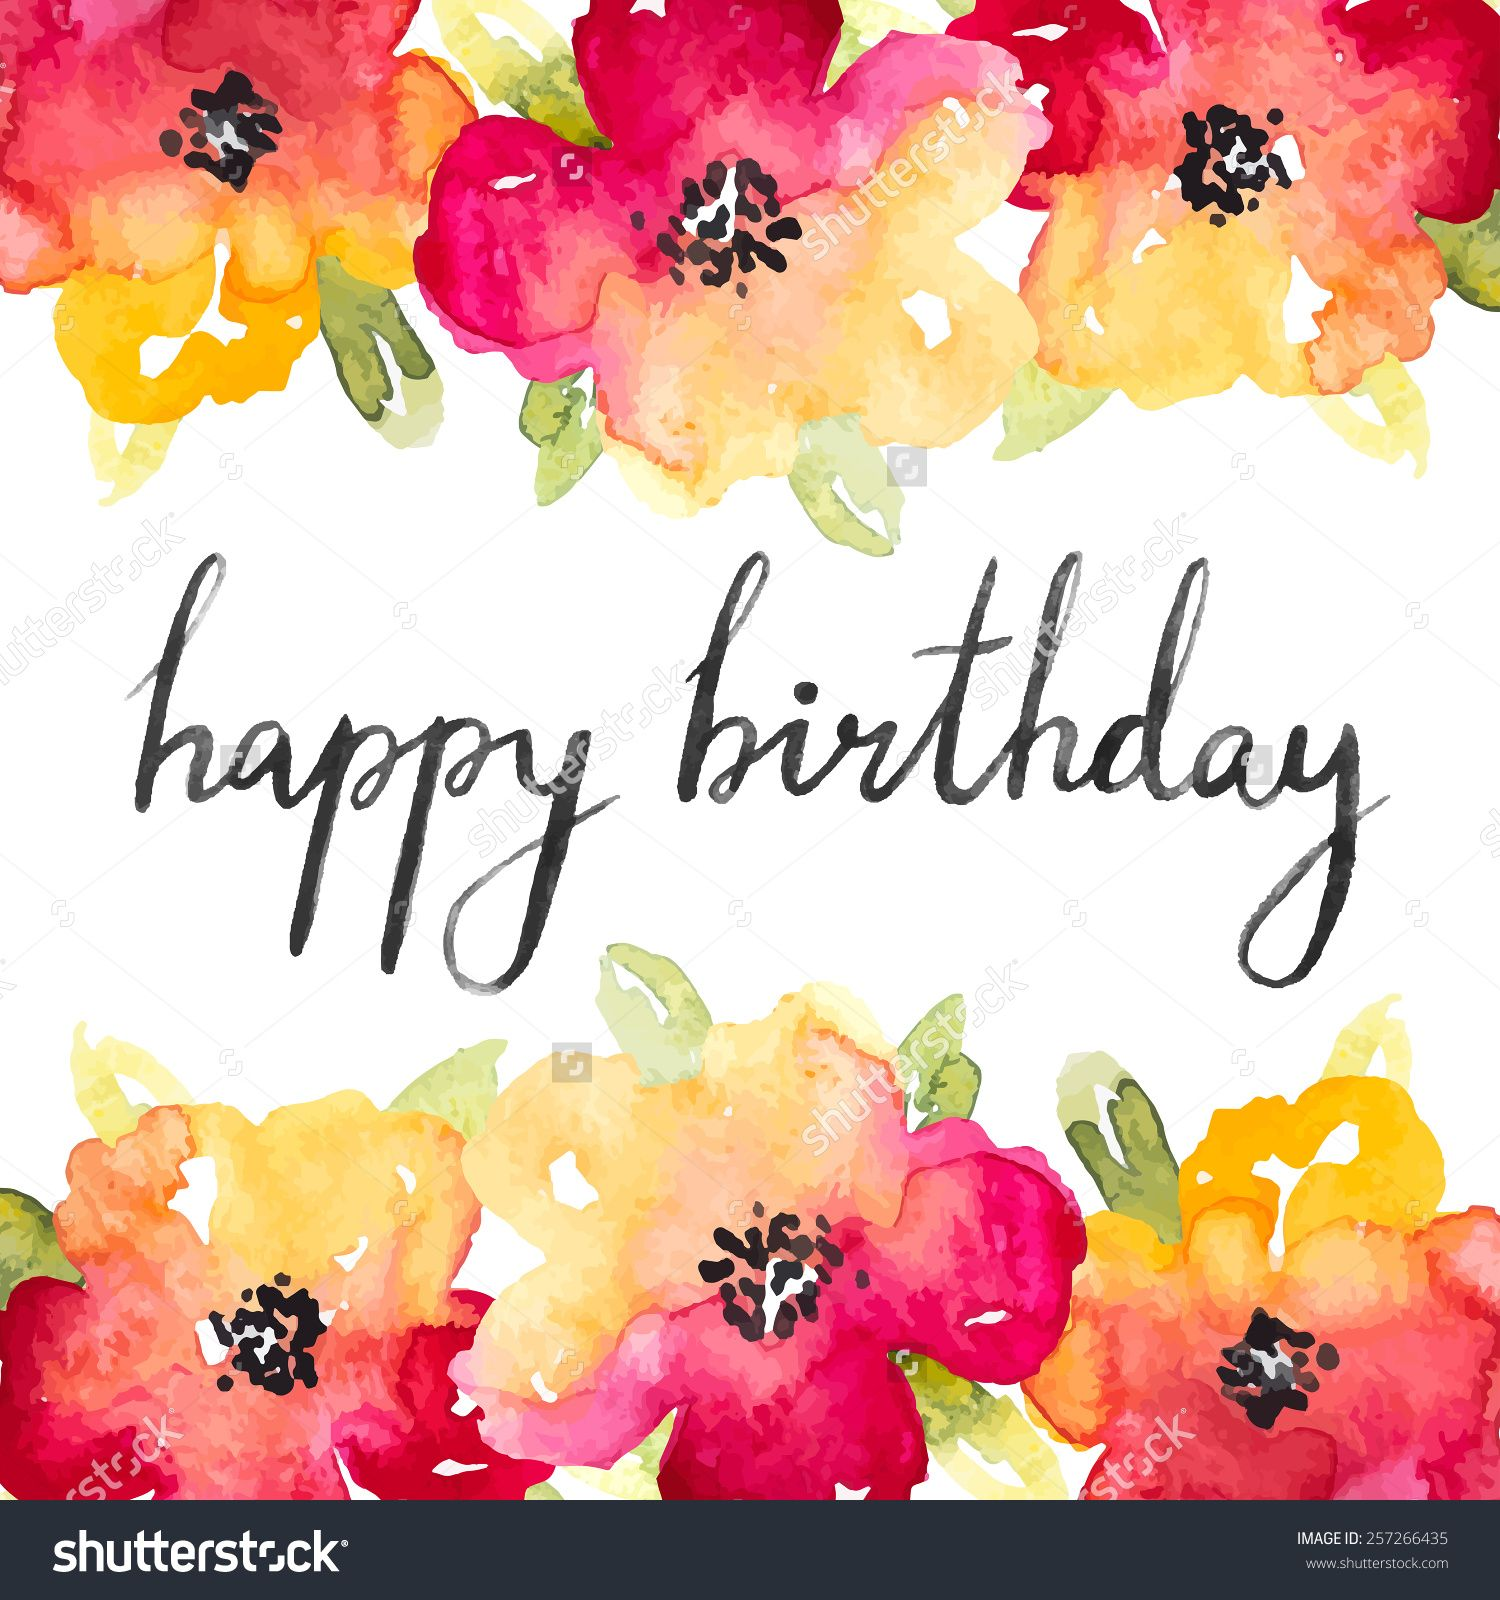 Vector Red And Yellow Anemones Watercolor Flowers With Happy Birthday